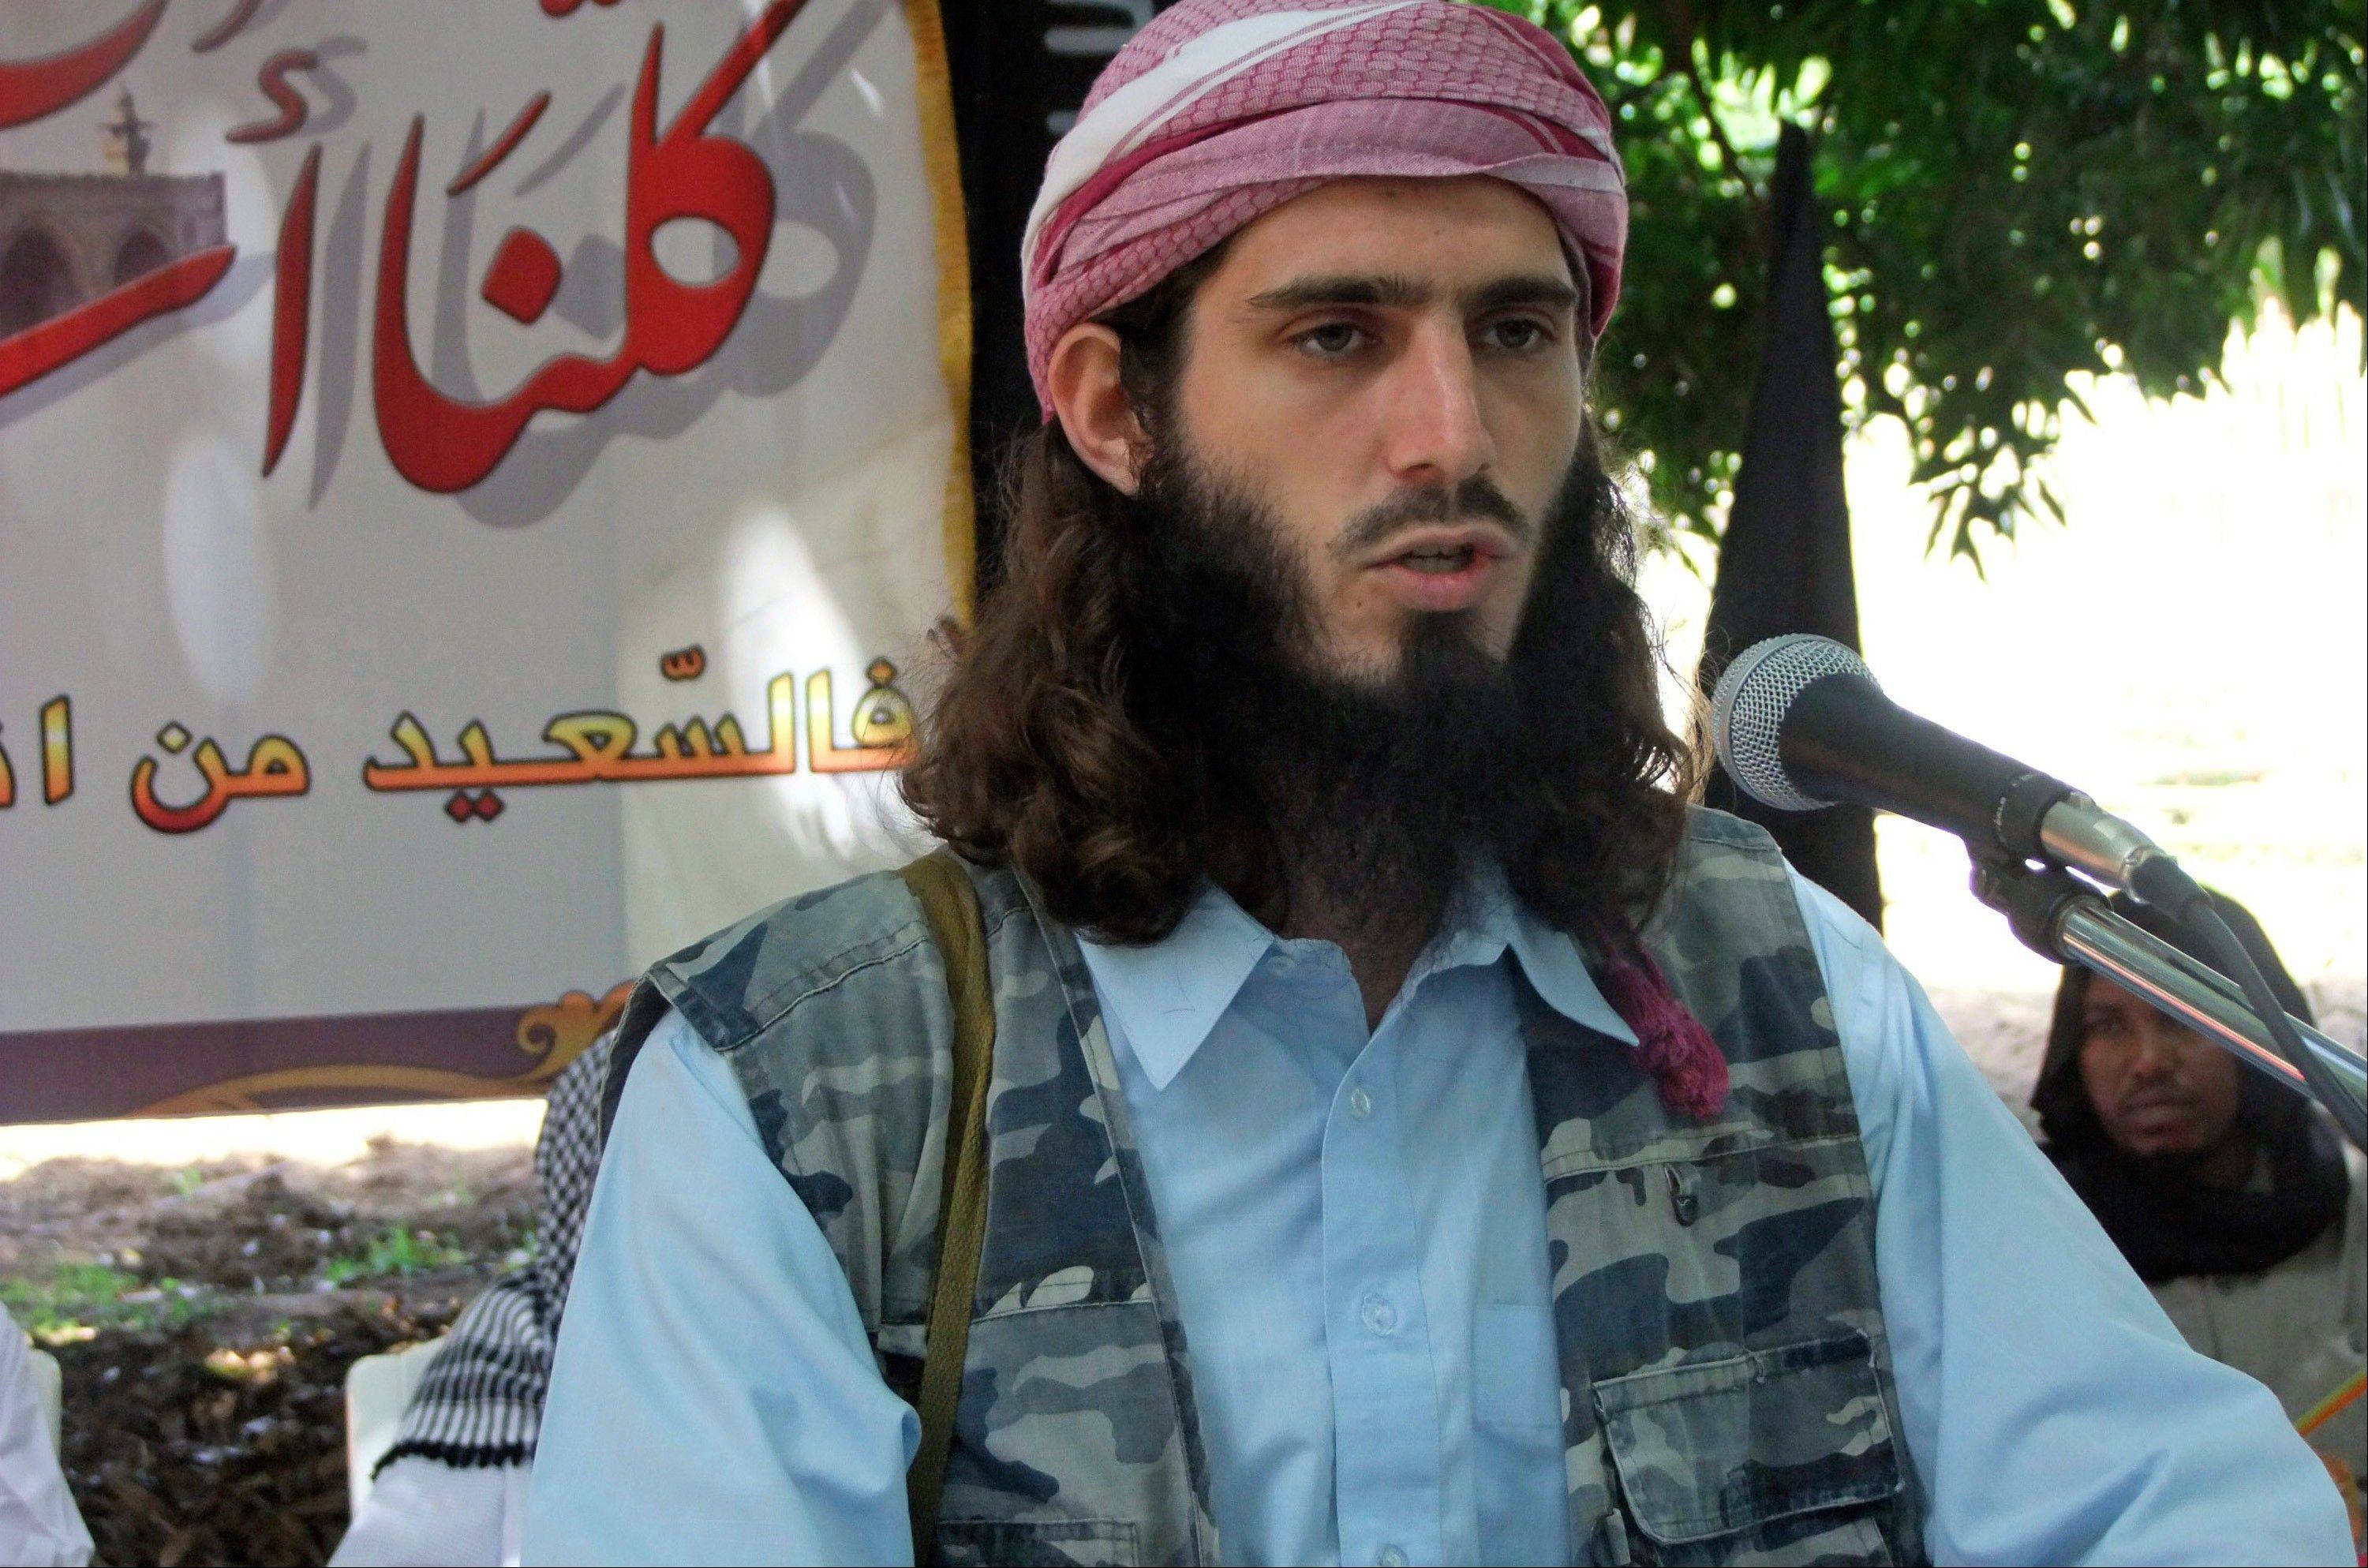 Omar Hammami, a jihadi from Alabama who ascended the ranks of Somalia�s al-Qaida-linked militant group al-Shabab high enough to attract a $5 million U.S. government bounty, was killed Thursday, Sept. 12, 2013 in an ambush ordered by the militant group�s leader, militants said.